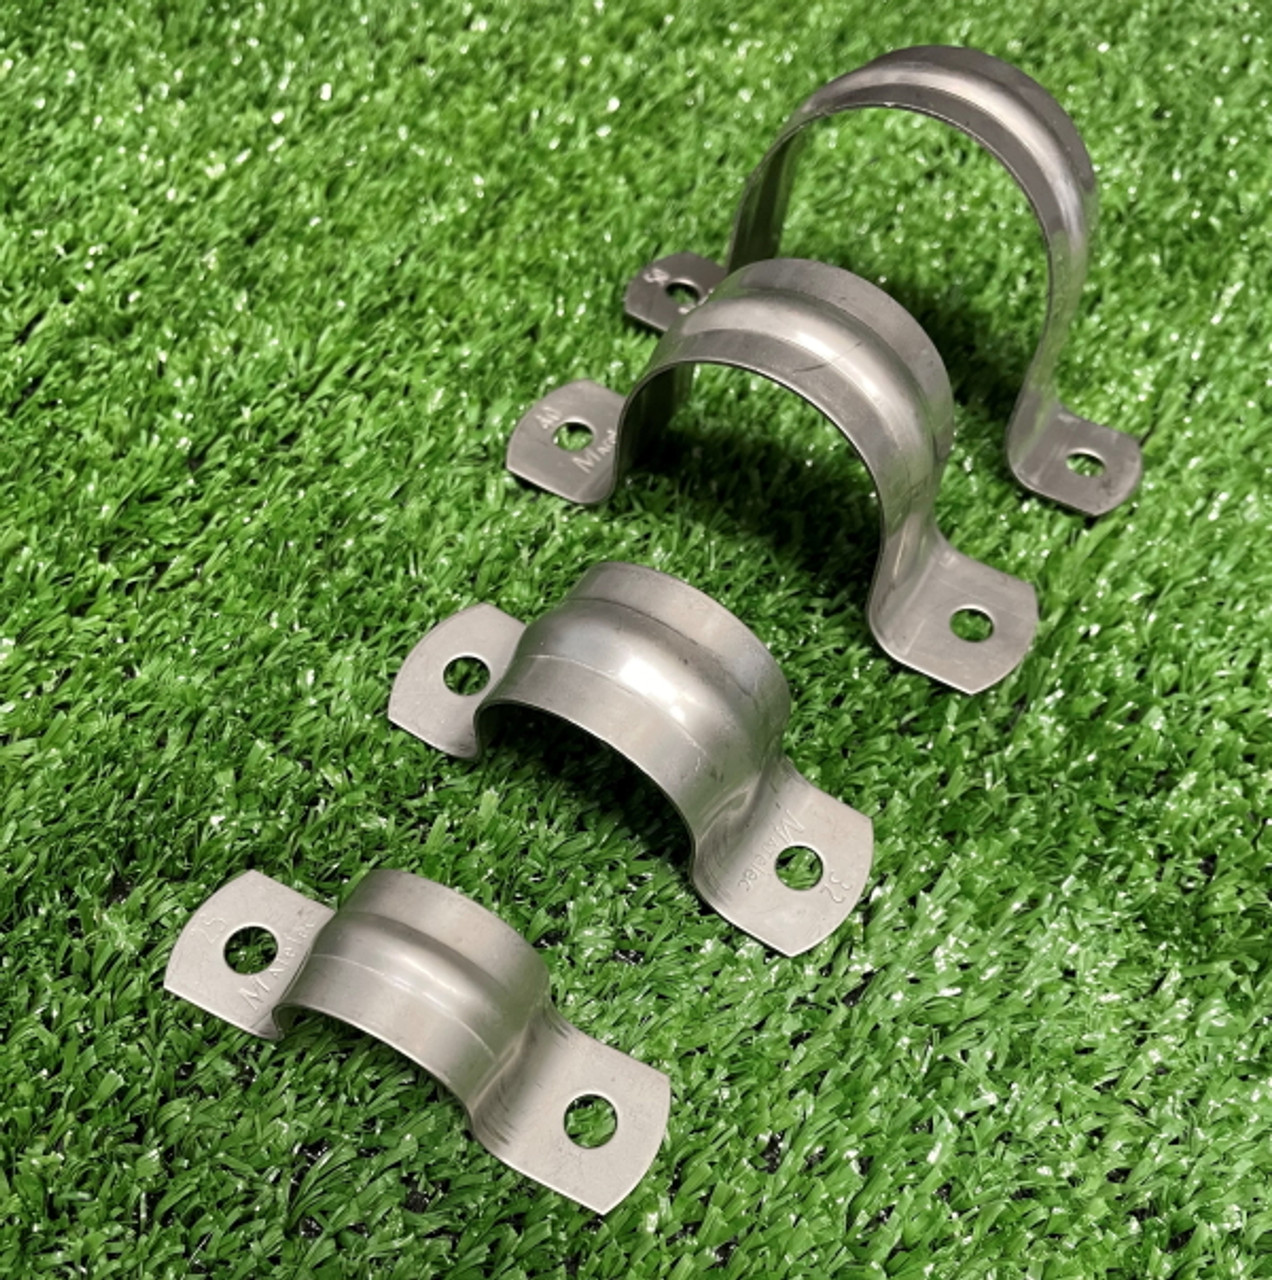 316 stainless steel saddles, 25, 32, 40 and 50mm.